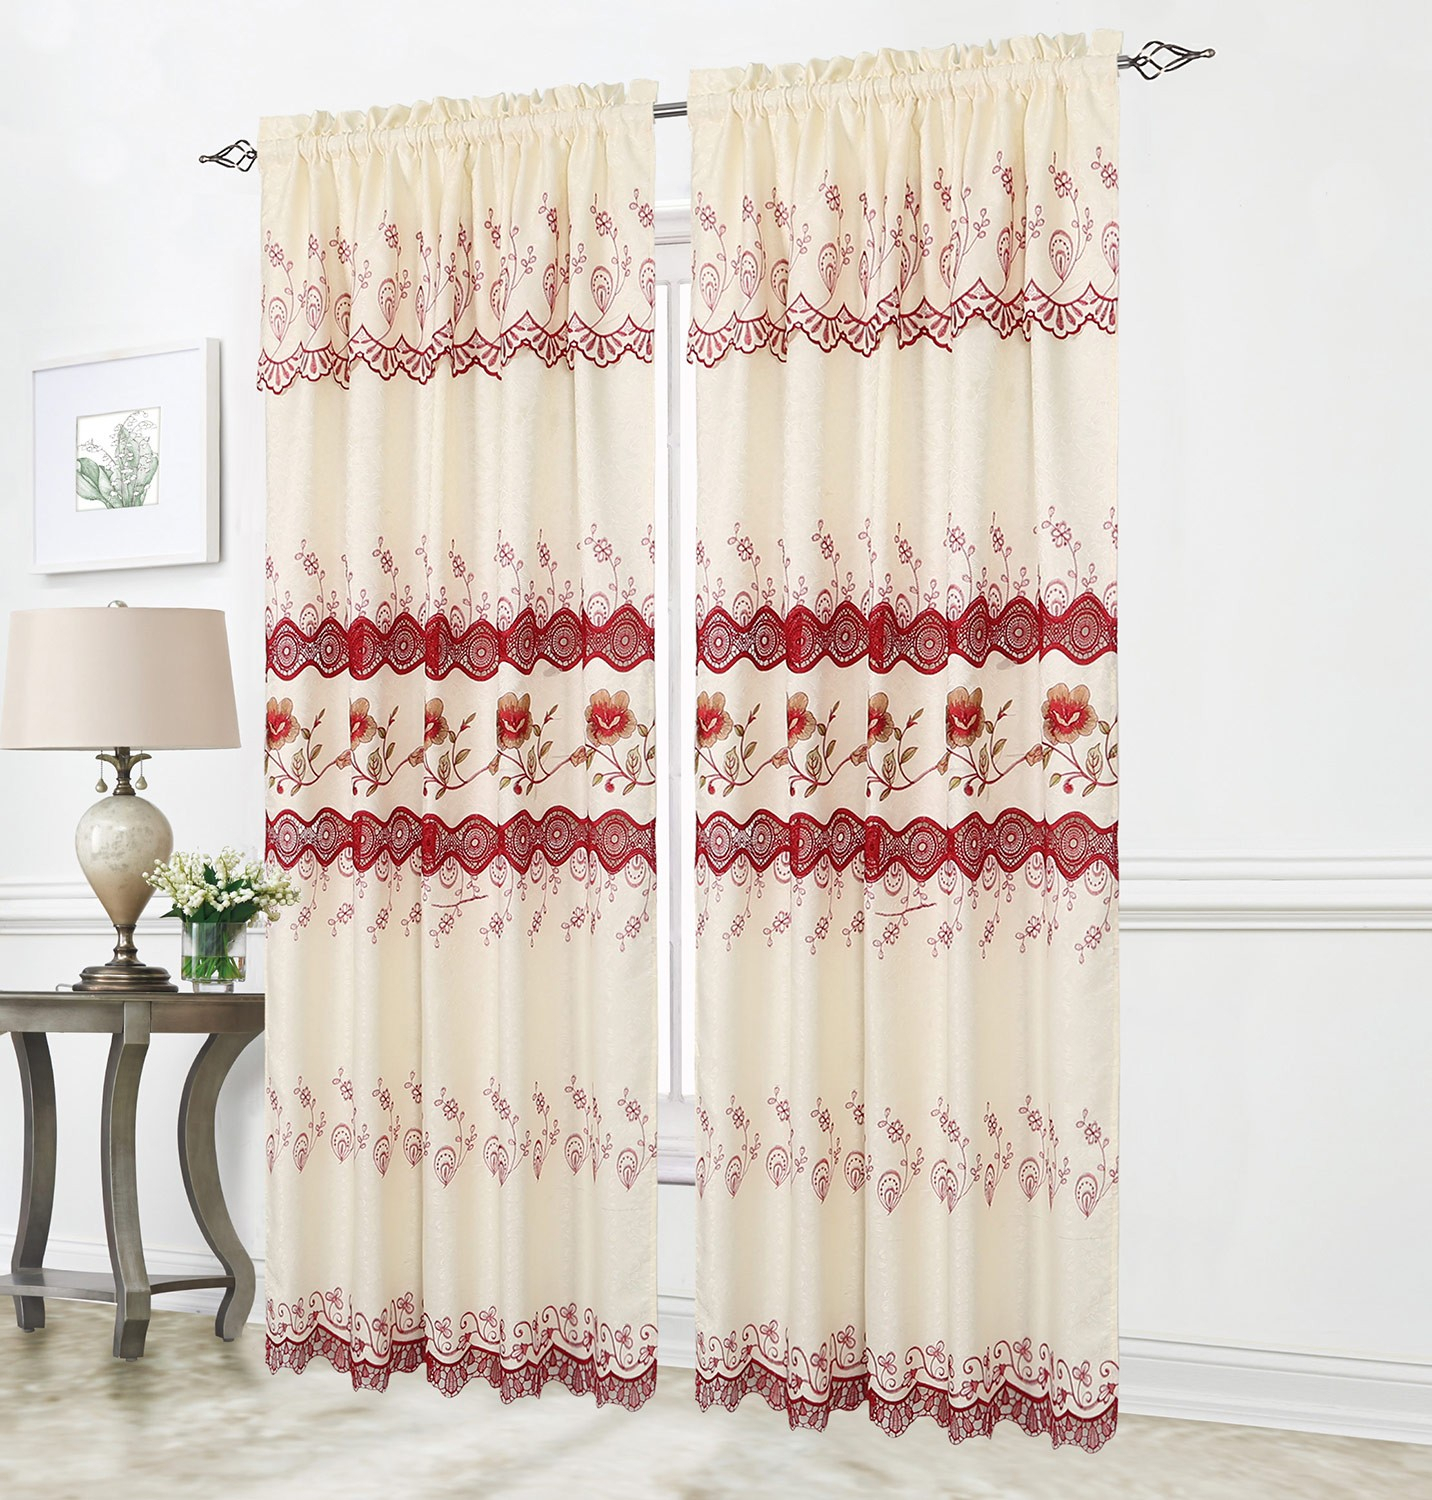 Tania Embroidered Macrame Window Panel, Burgundy, 54X84 Inches For Coffee Drinks Embroidered Window Valances And Tiers (View 14 of 20)